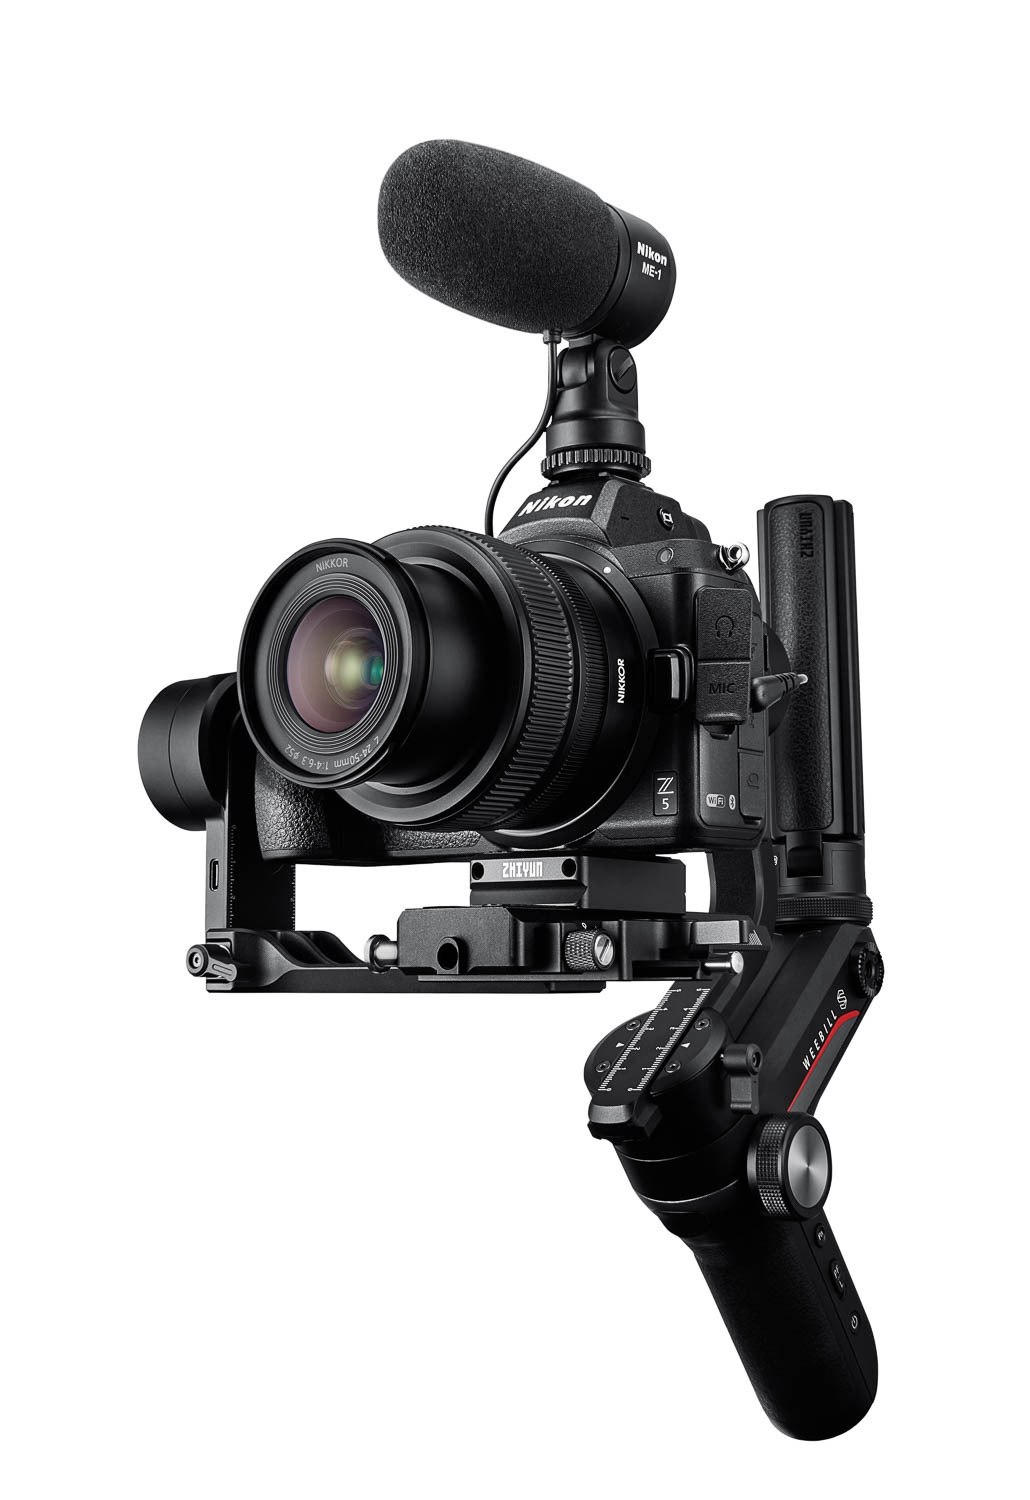 Z5_24-50_4-6.3_3rd_party_video_rig.jpg